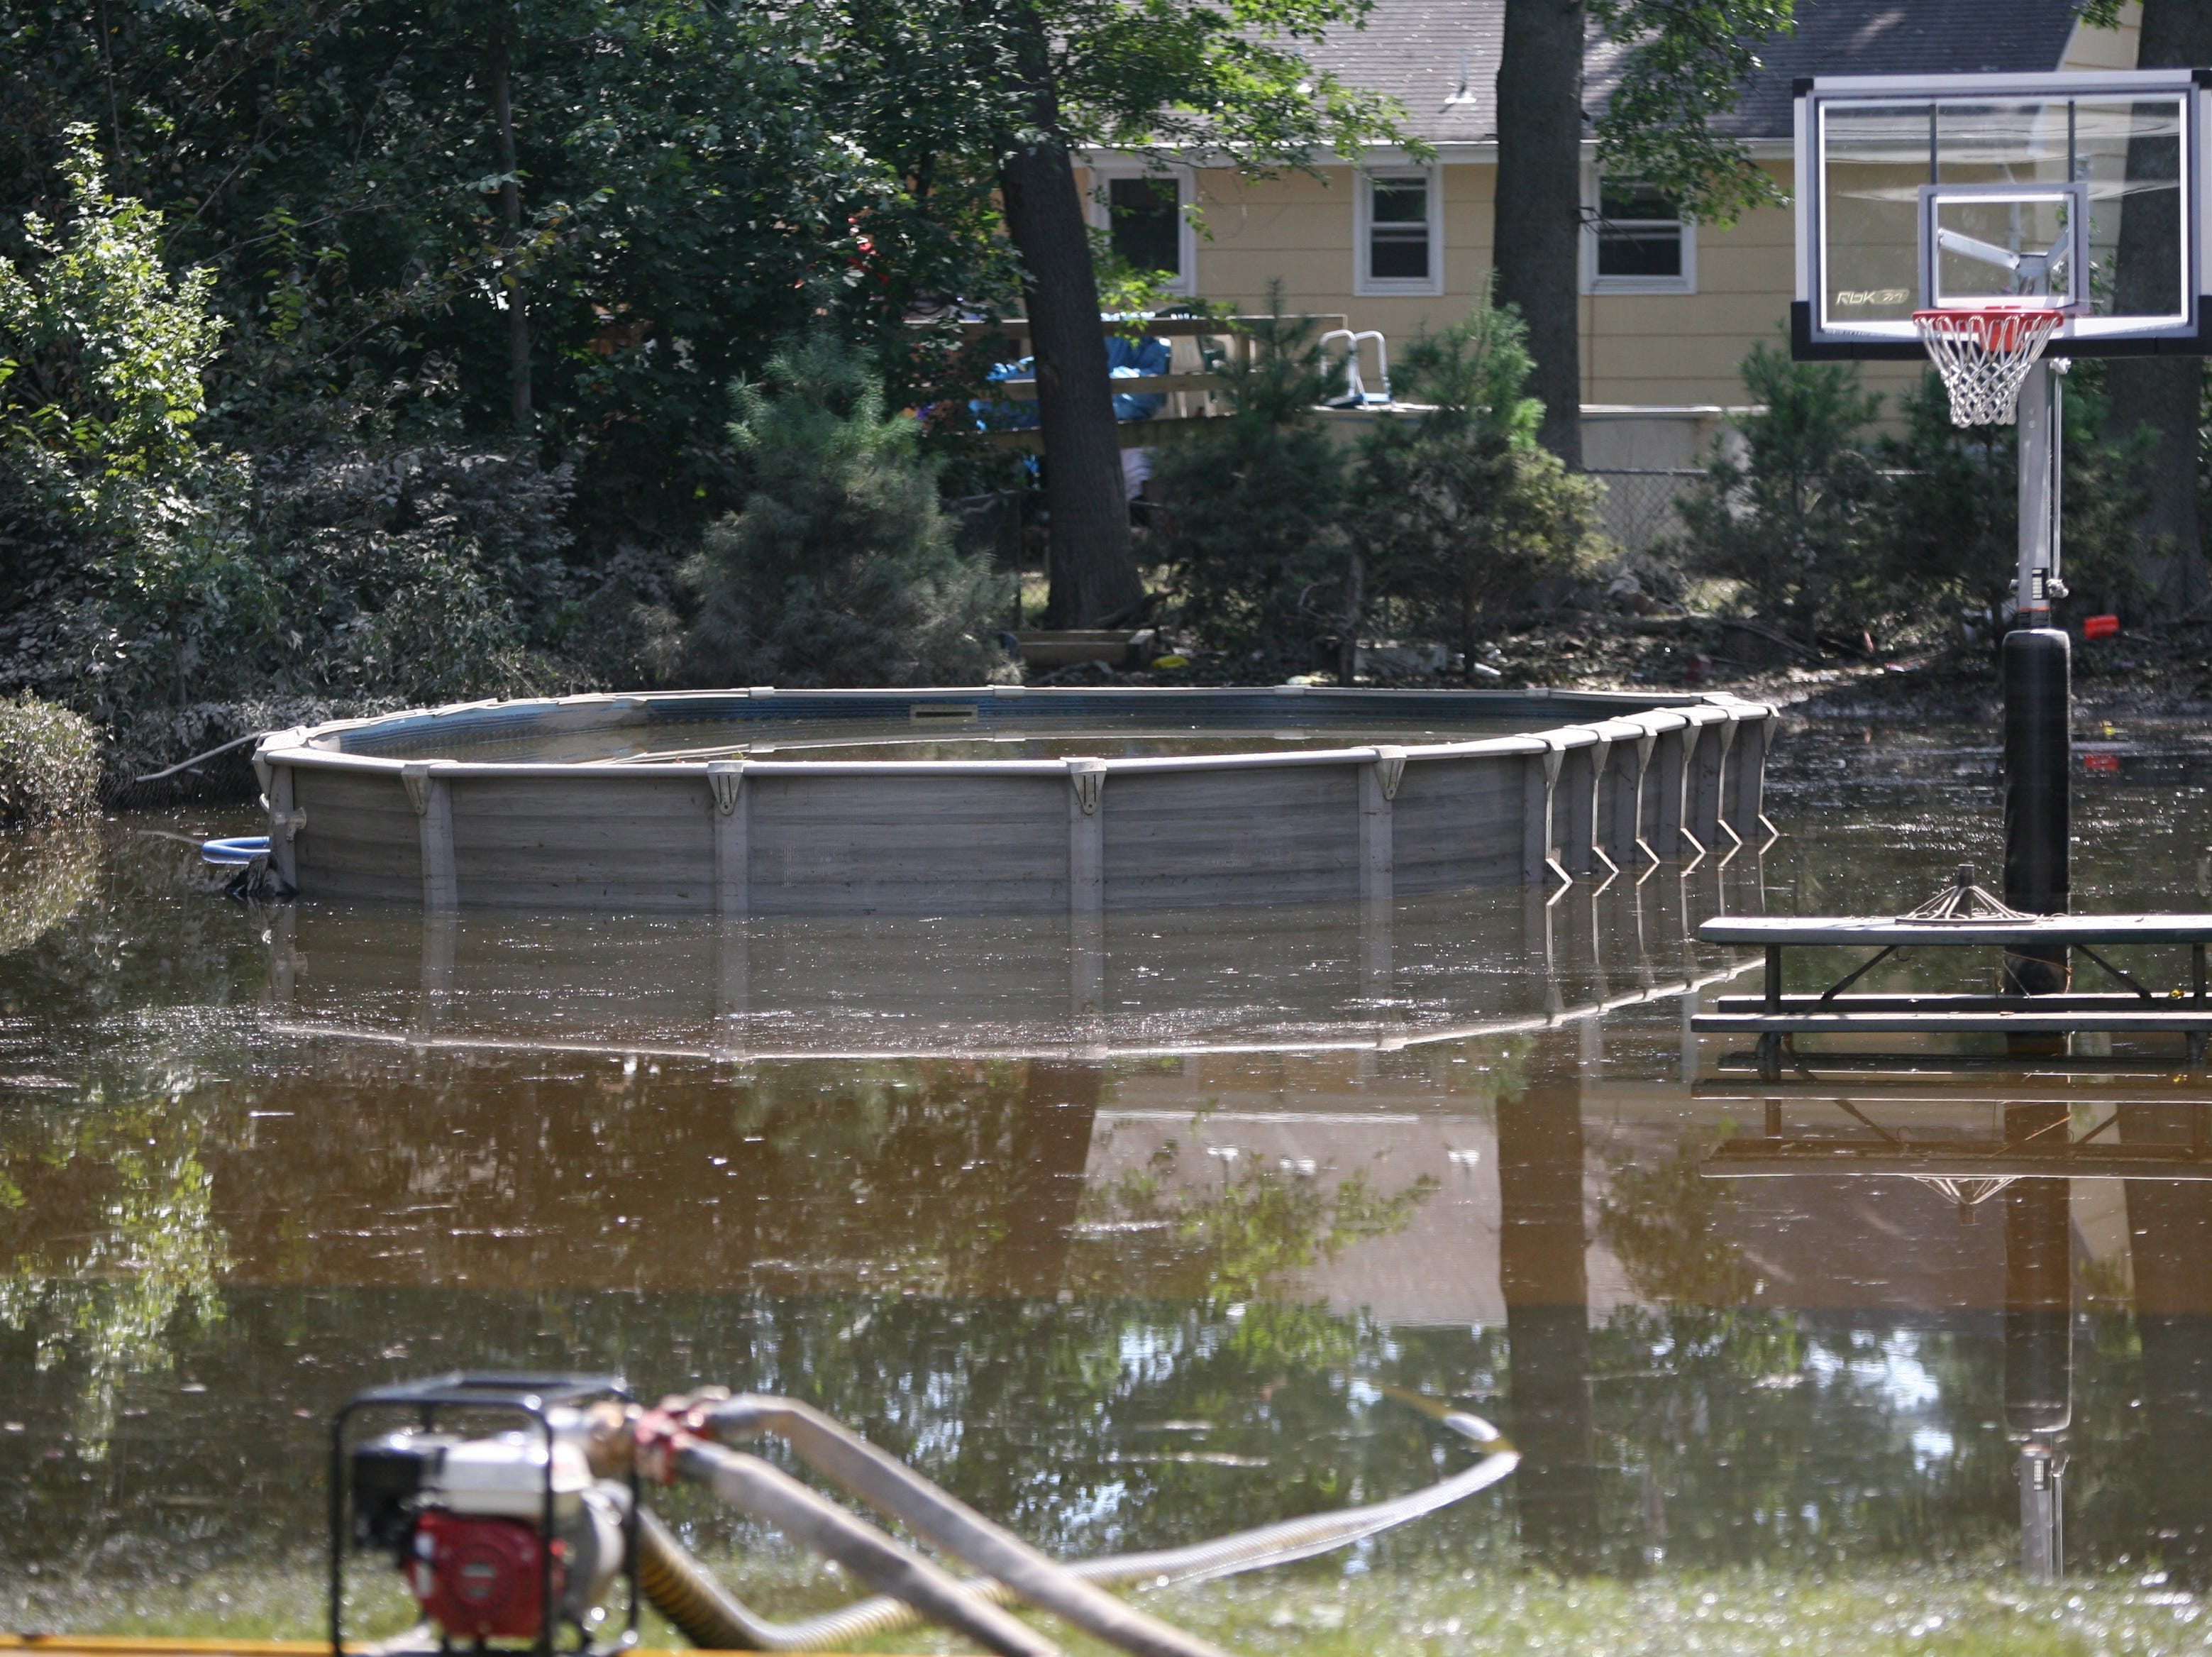 Aug. 31, 2011: Pompton Lakes cleans up from the effects of Hurricane Irene.  A backyard of a home on Dawes Highway is still flooded and being pumped.